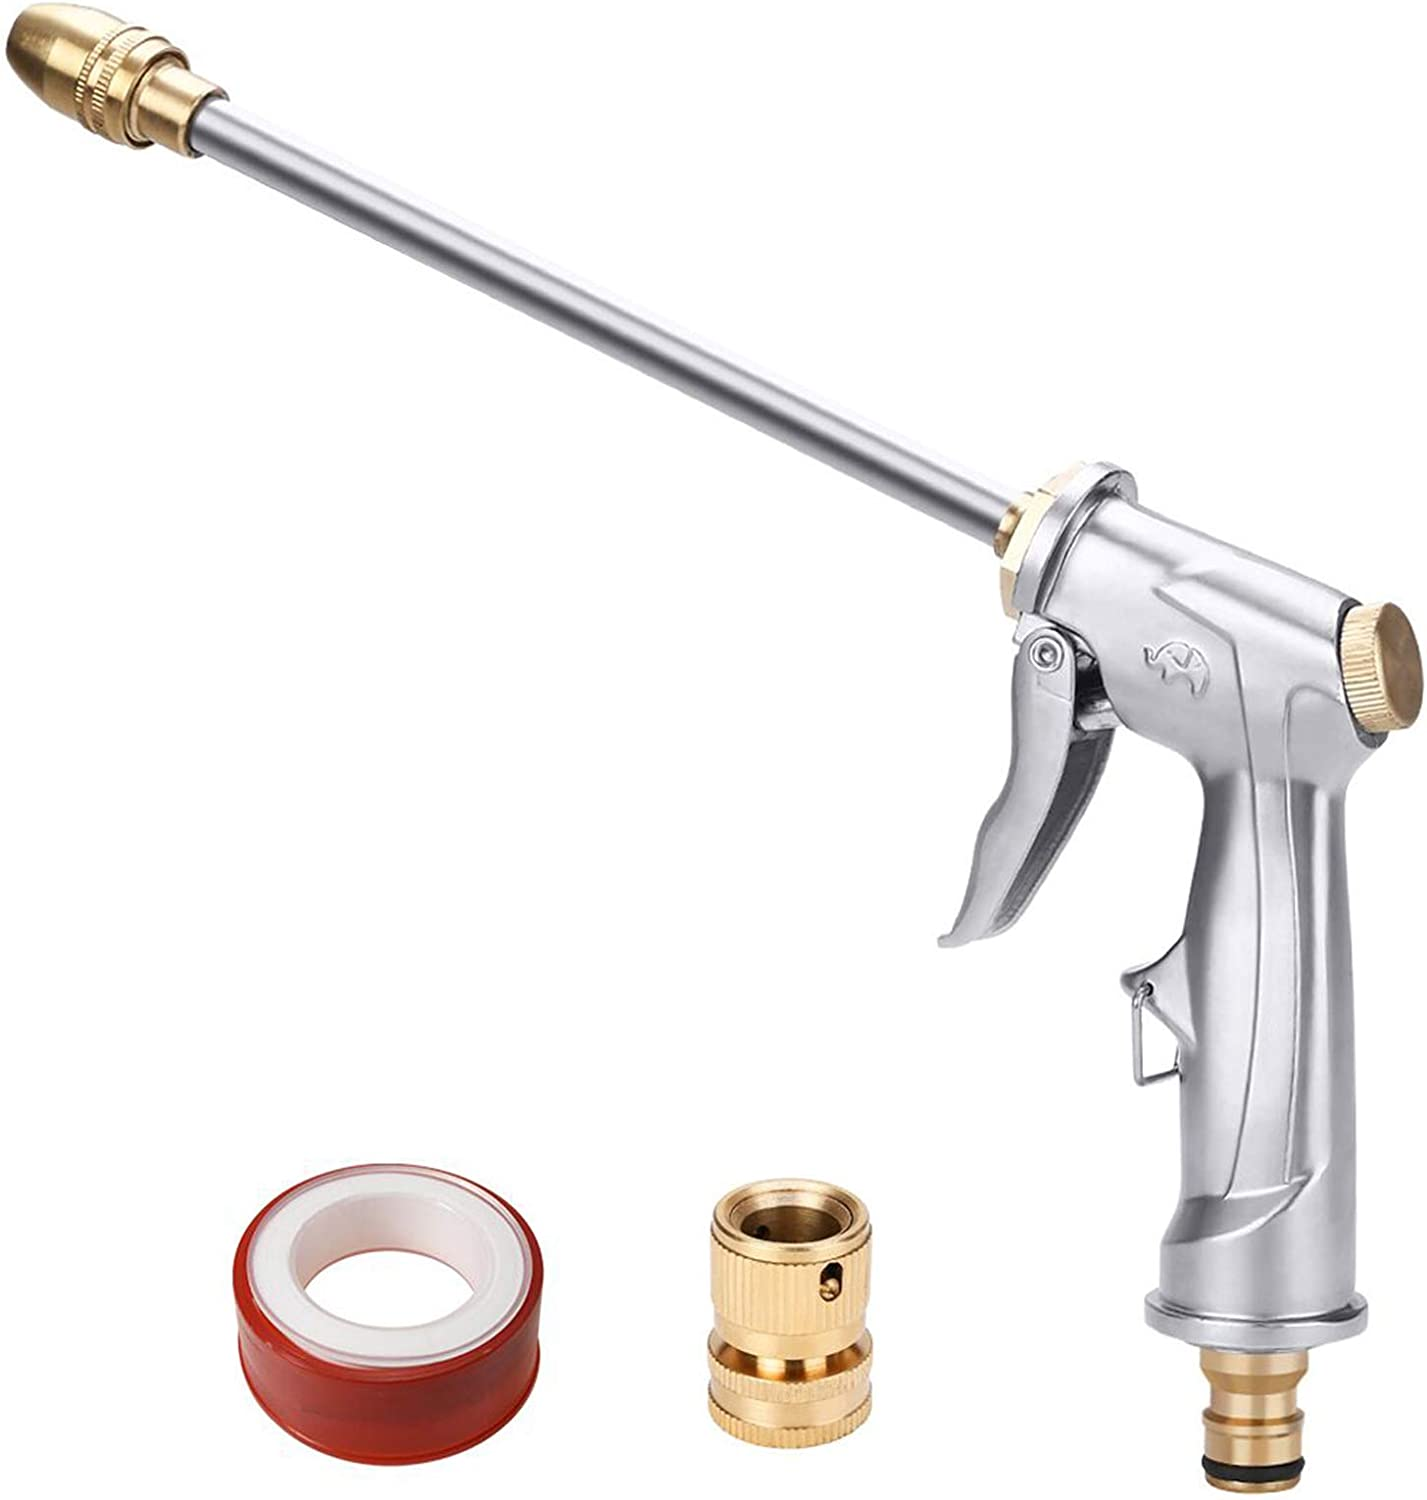 Amazon Com Water Hose Nozzle Heavy Duty Metal Spray Gun 360 Rotating Water Adjustment High Pressure Leak Proof Pistol Grip Sprayer For Car Washing Plants Watering Pets Shower Cleaning Long Silver Home Improvement